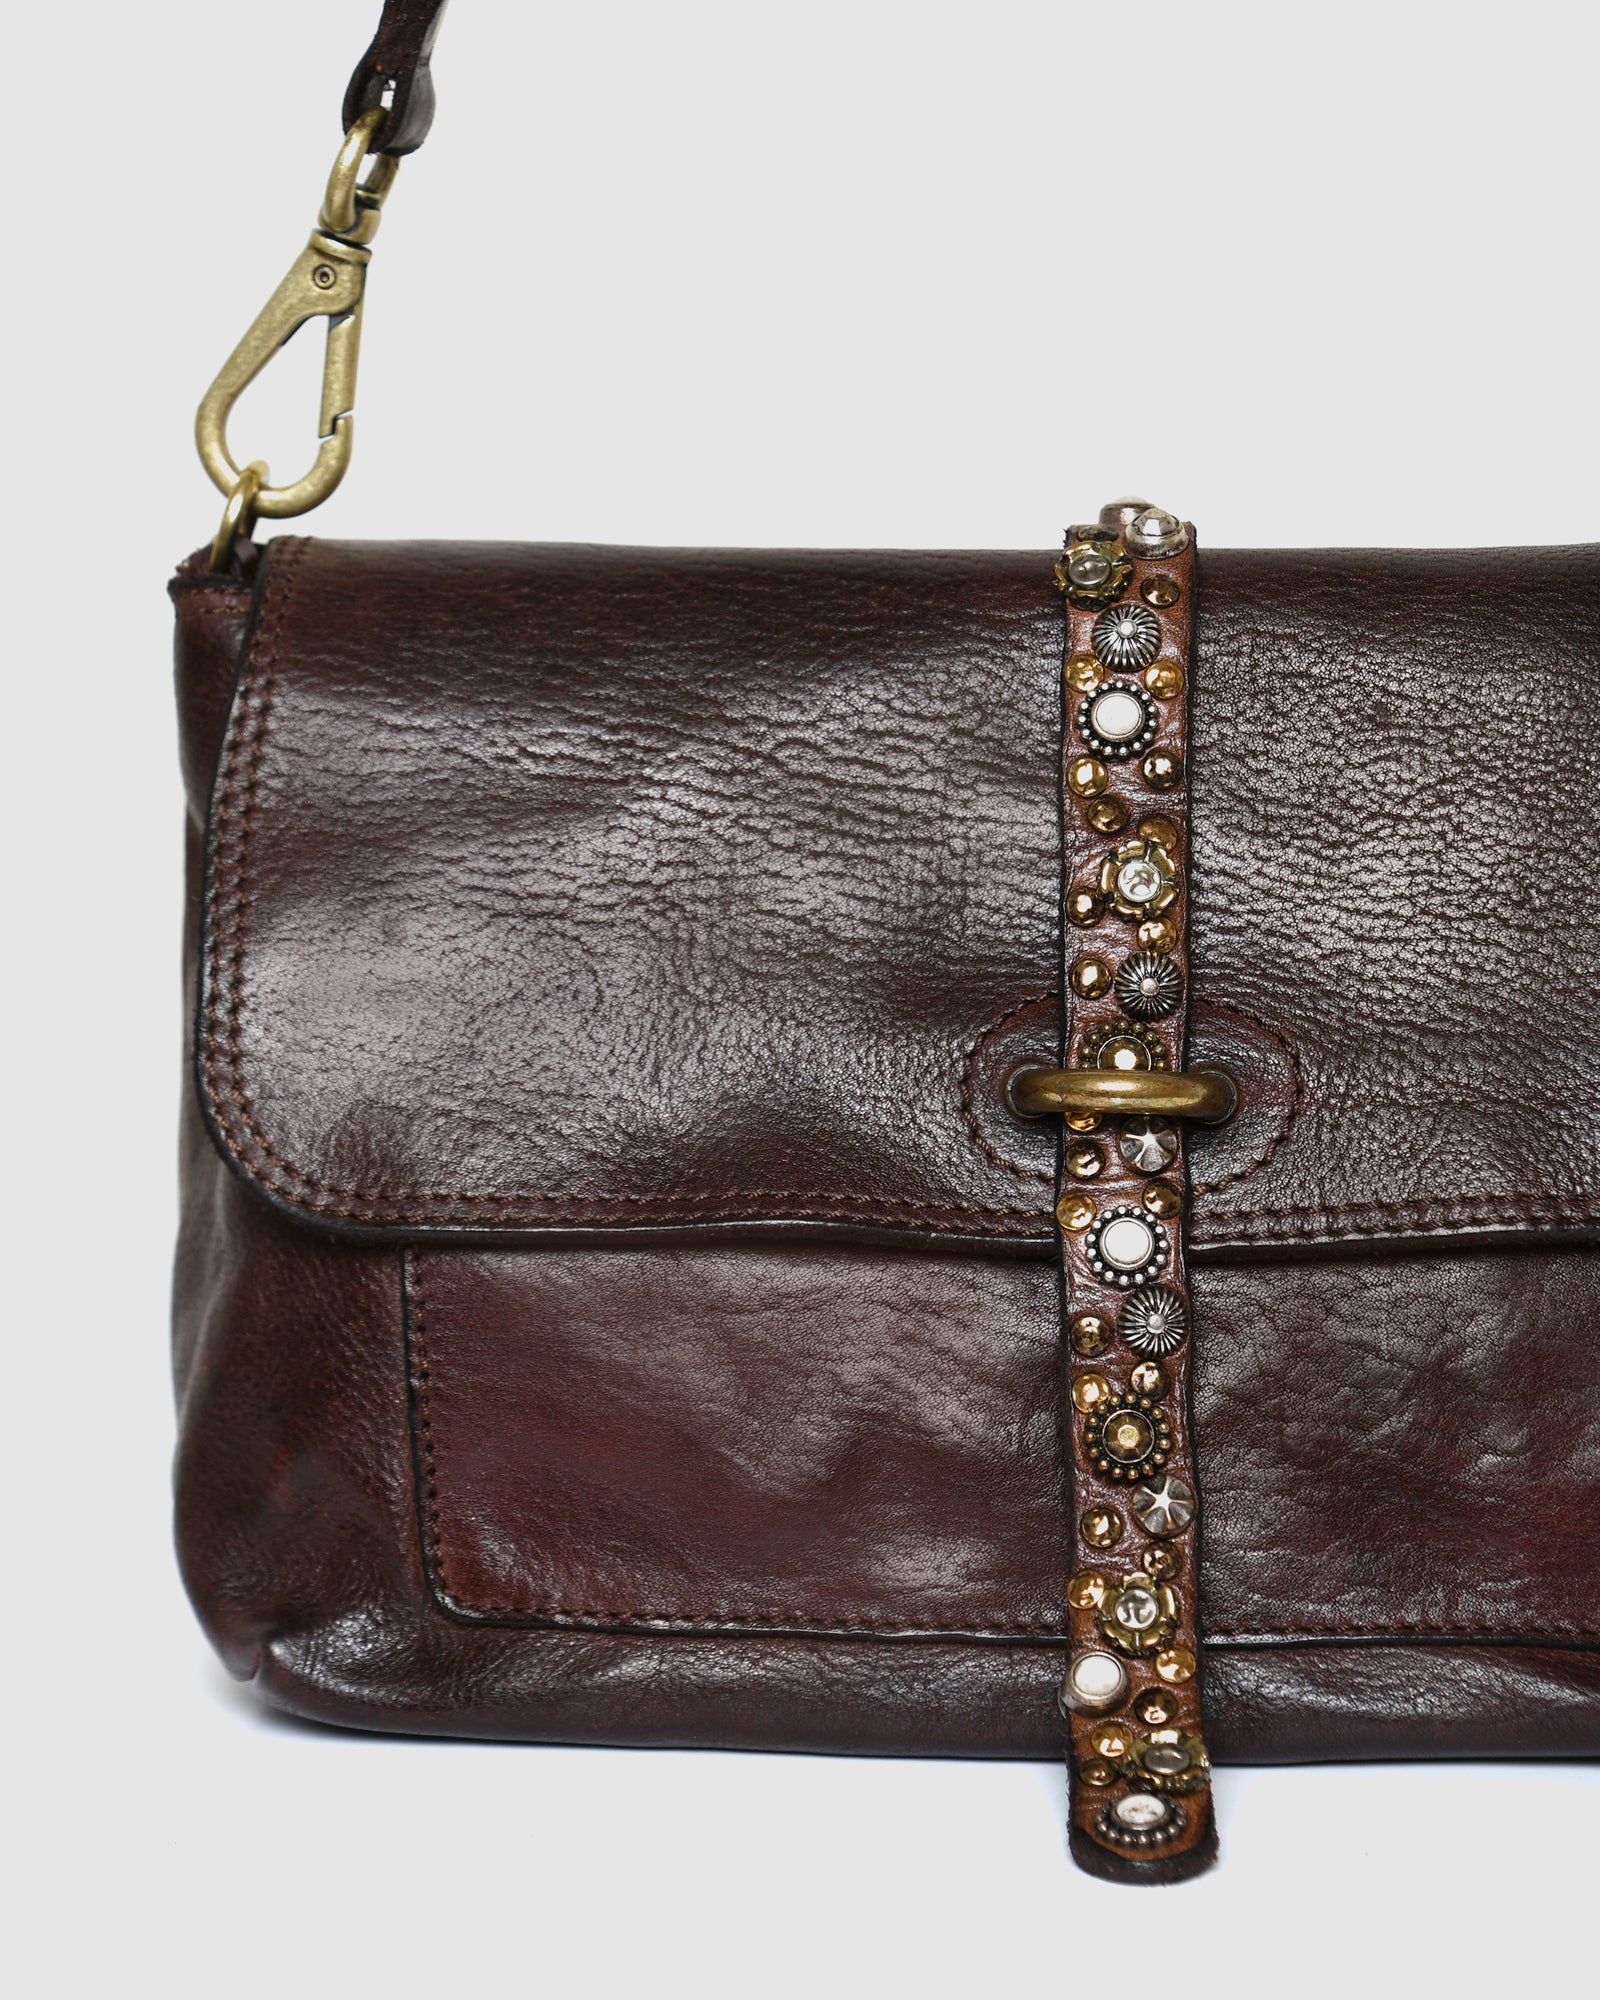 CAMPOMAGGI RAVENNA CROSSBODY BAG DARK BROWN LEATHER